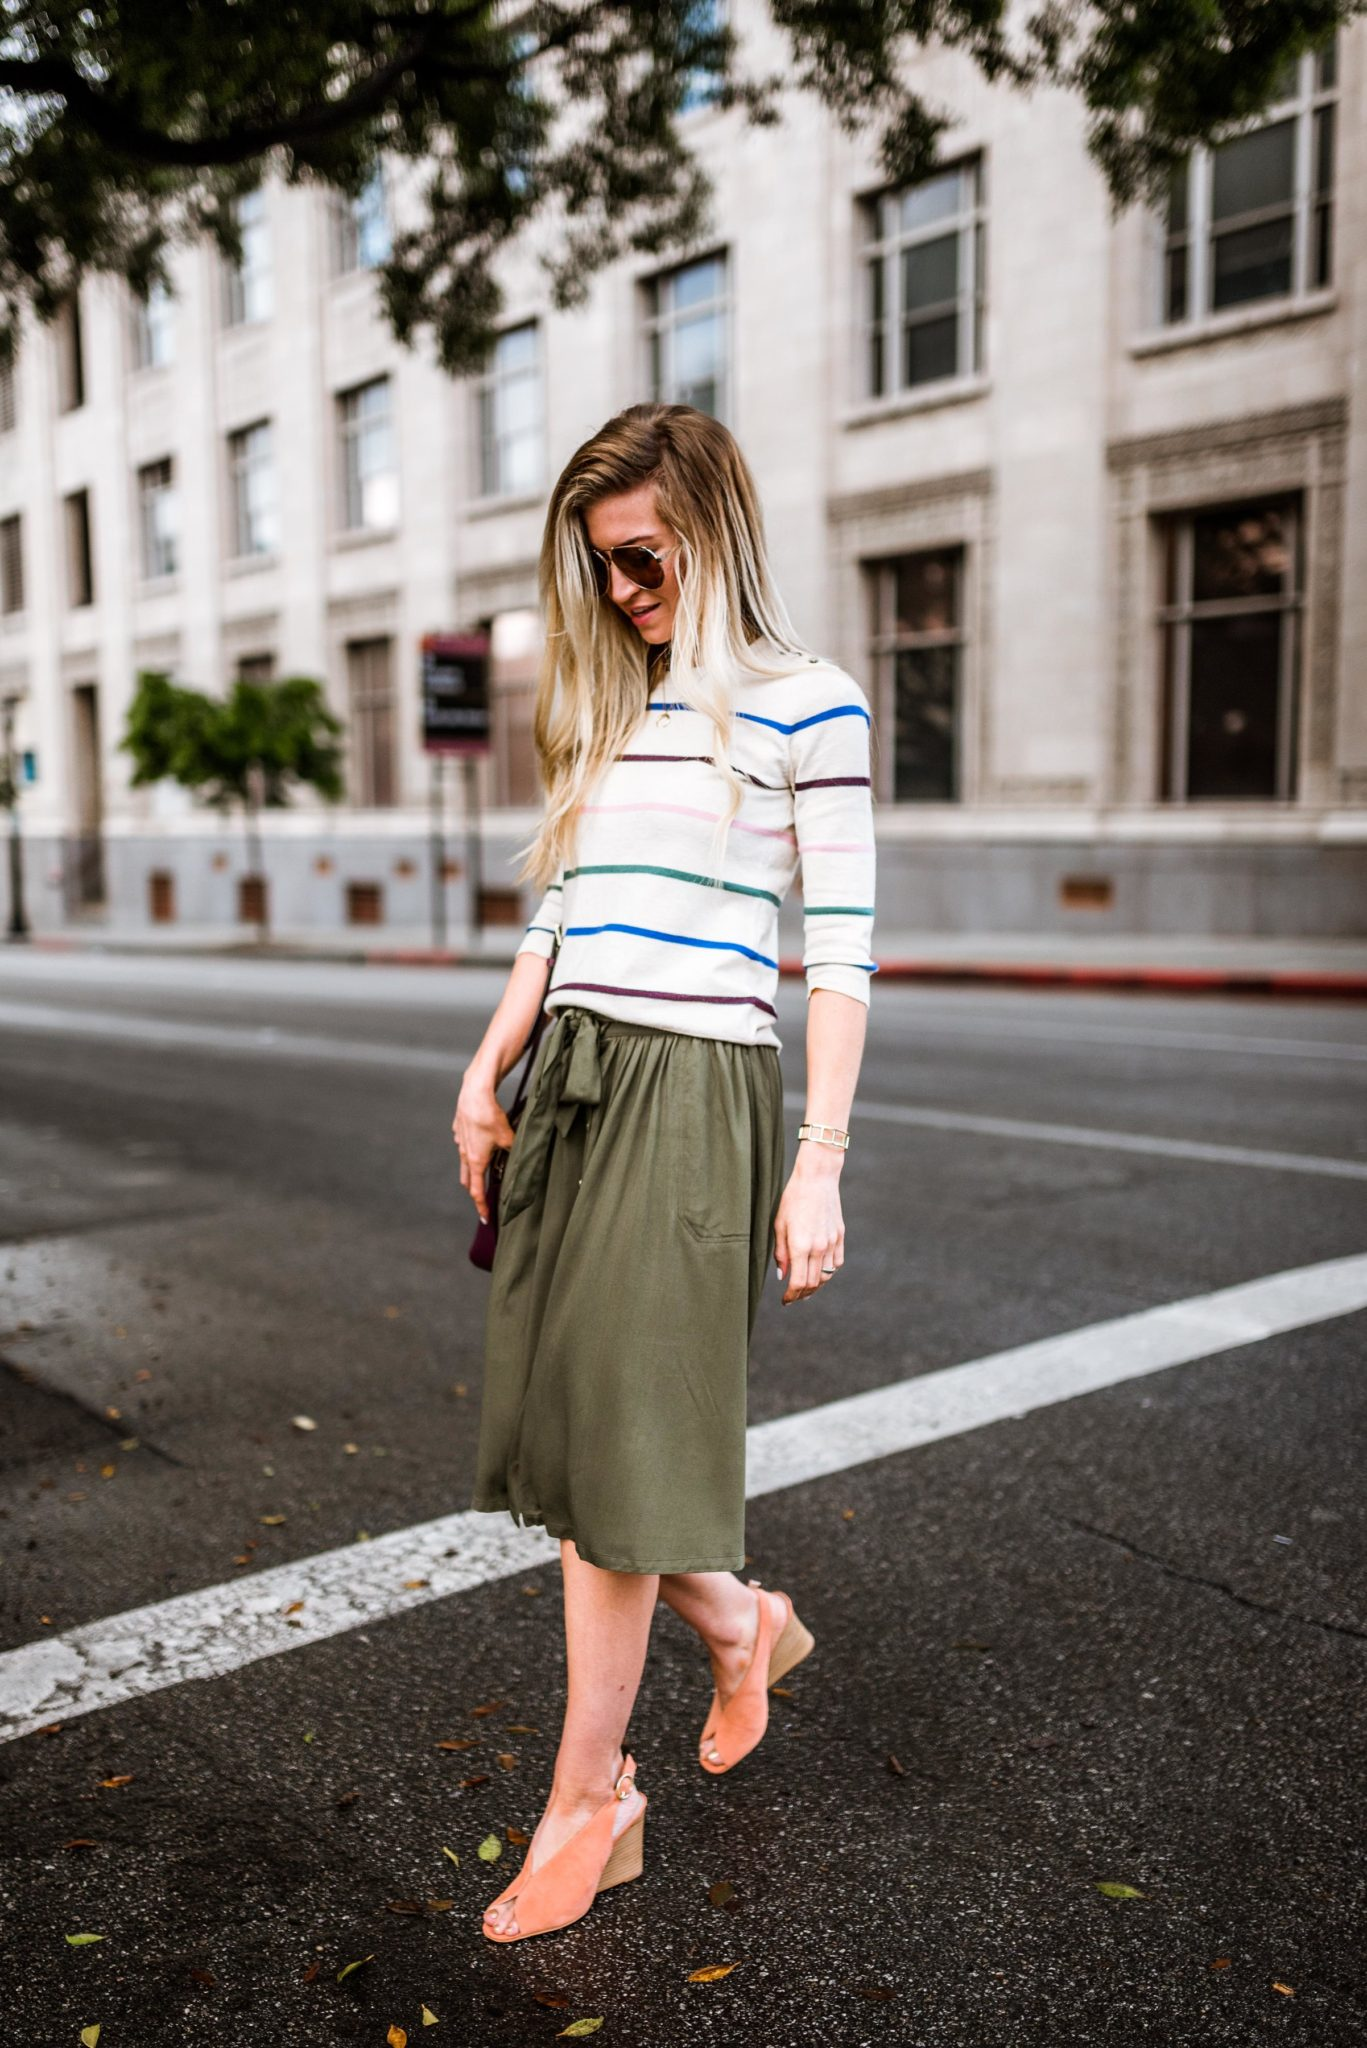 Outfit details: Striped sweater + olive green skirt